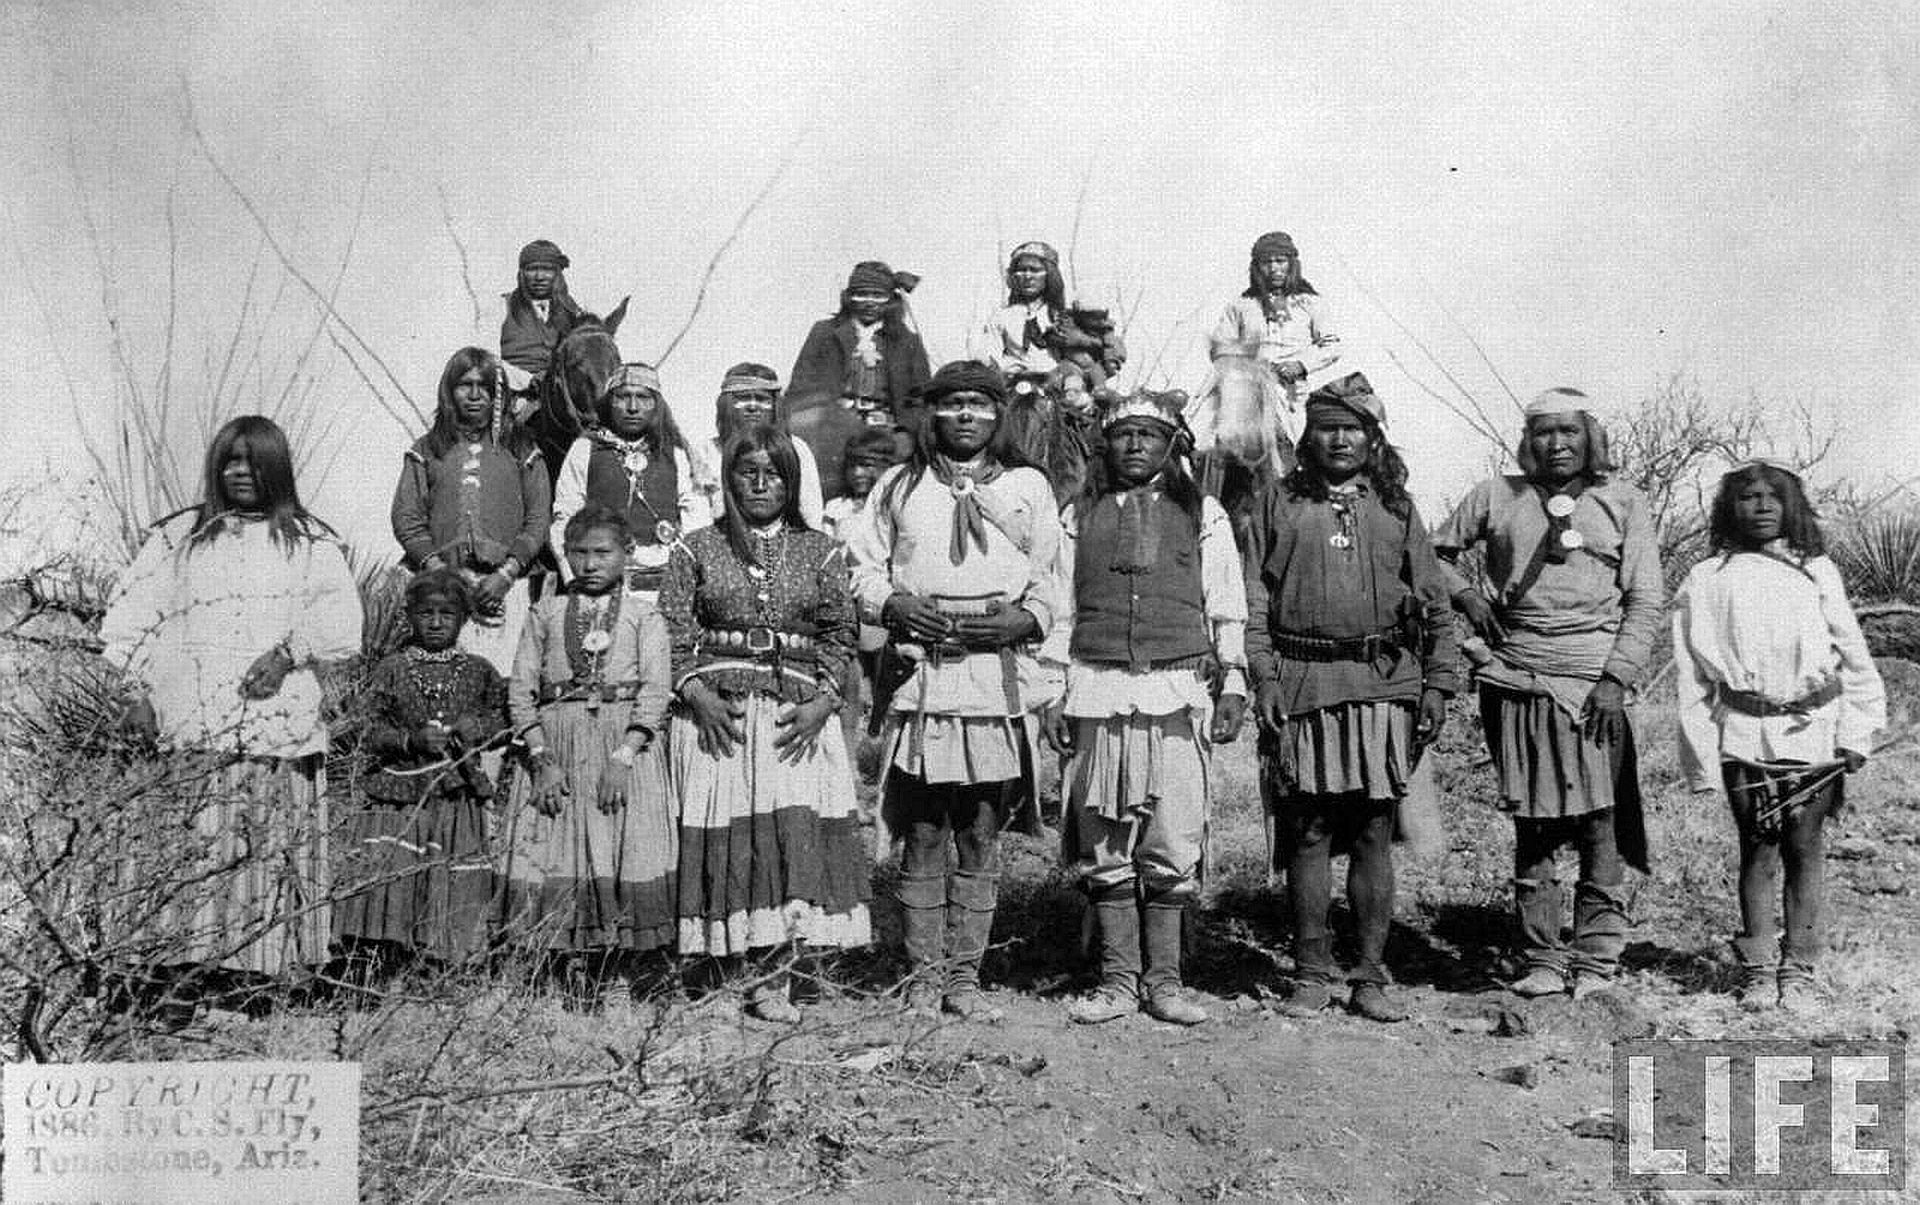 """""""Band of Chiricahua Apache Indians, followers of legendary renegade Geronimo, attending a peace negotiation after a long struggle against US gov't attempts to force them onto reservations. Location: Tombstone, AZ, US Date taken: 1886"""""""